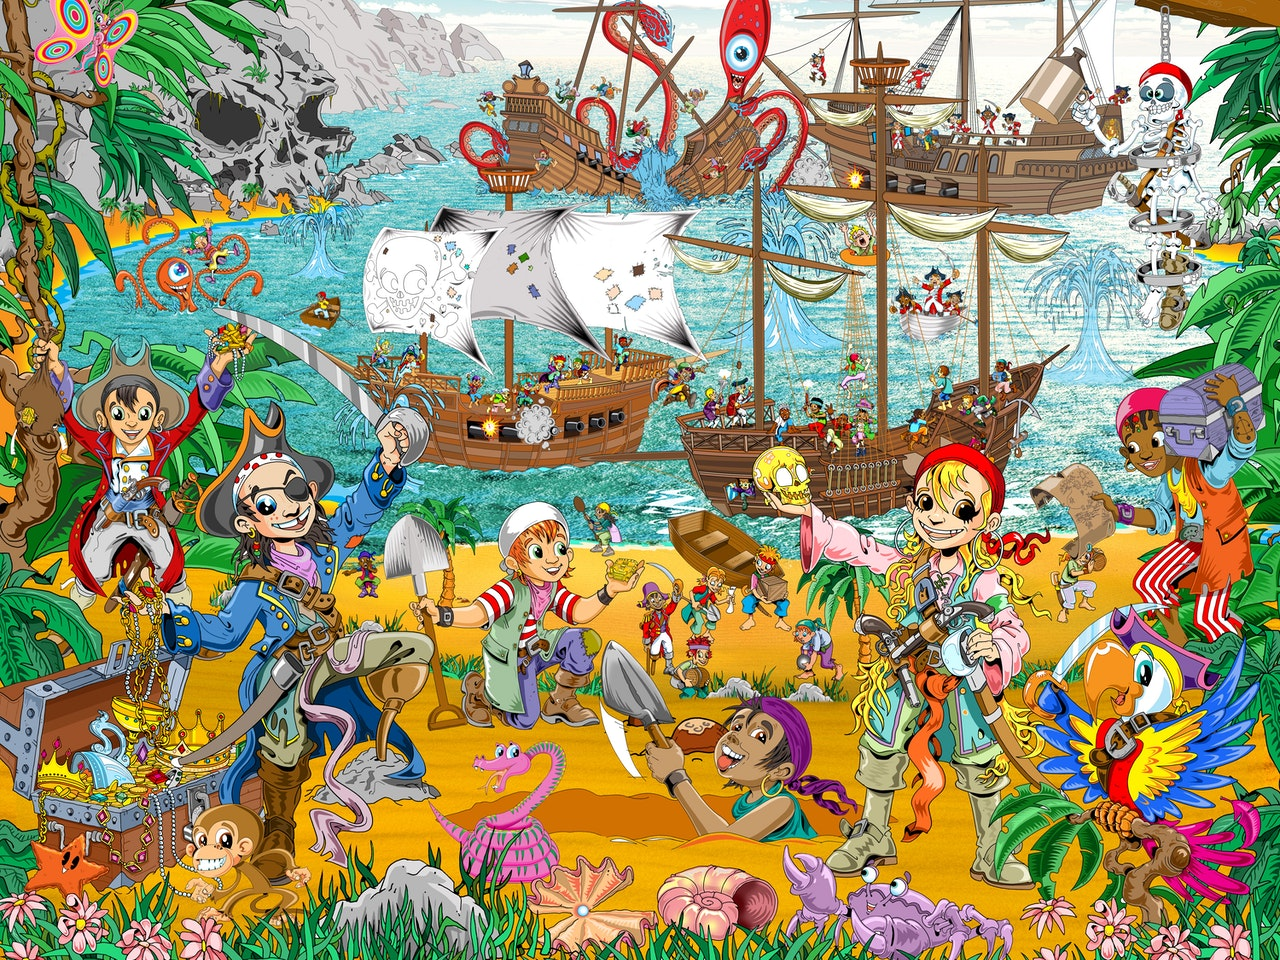 educational historical friendly funny Funky Happy manga anime childrens cartoon comic strip pirates buried treasure gold skull island kracken bluebeard